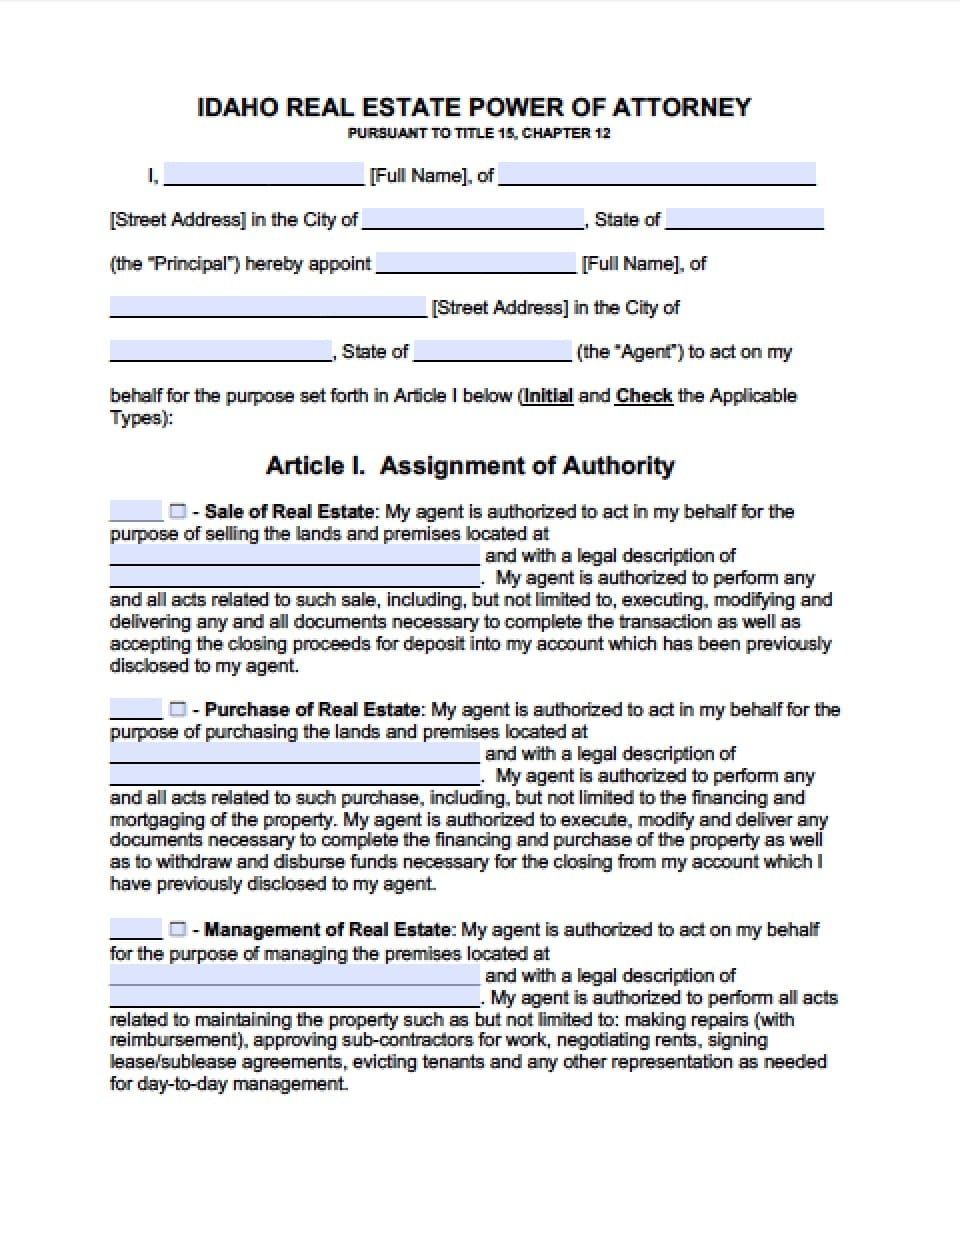 Idaho Real Estate ONLY Power of Attorney Form - Power of Attorney ...